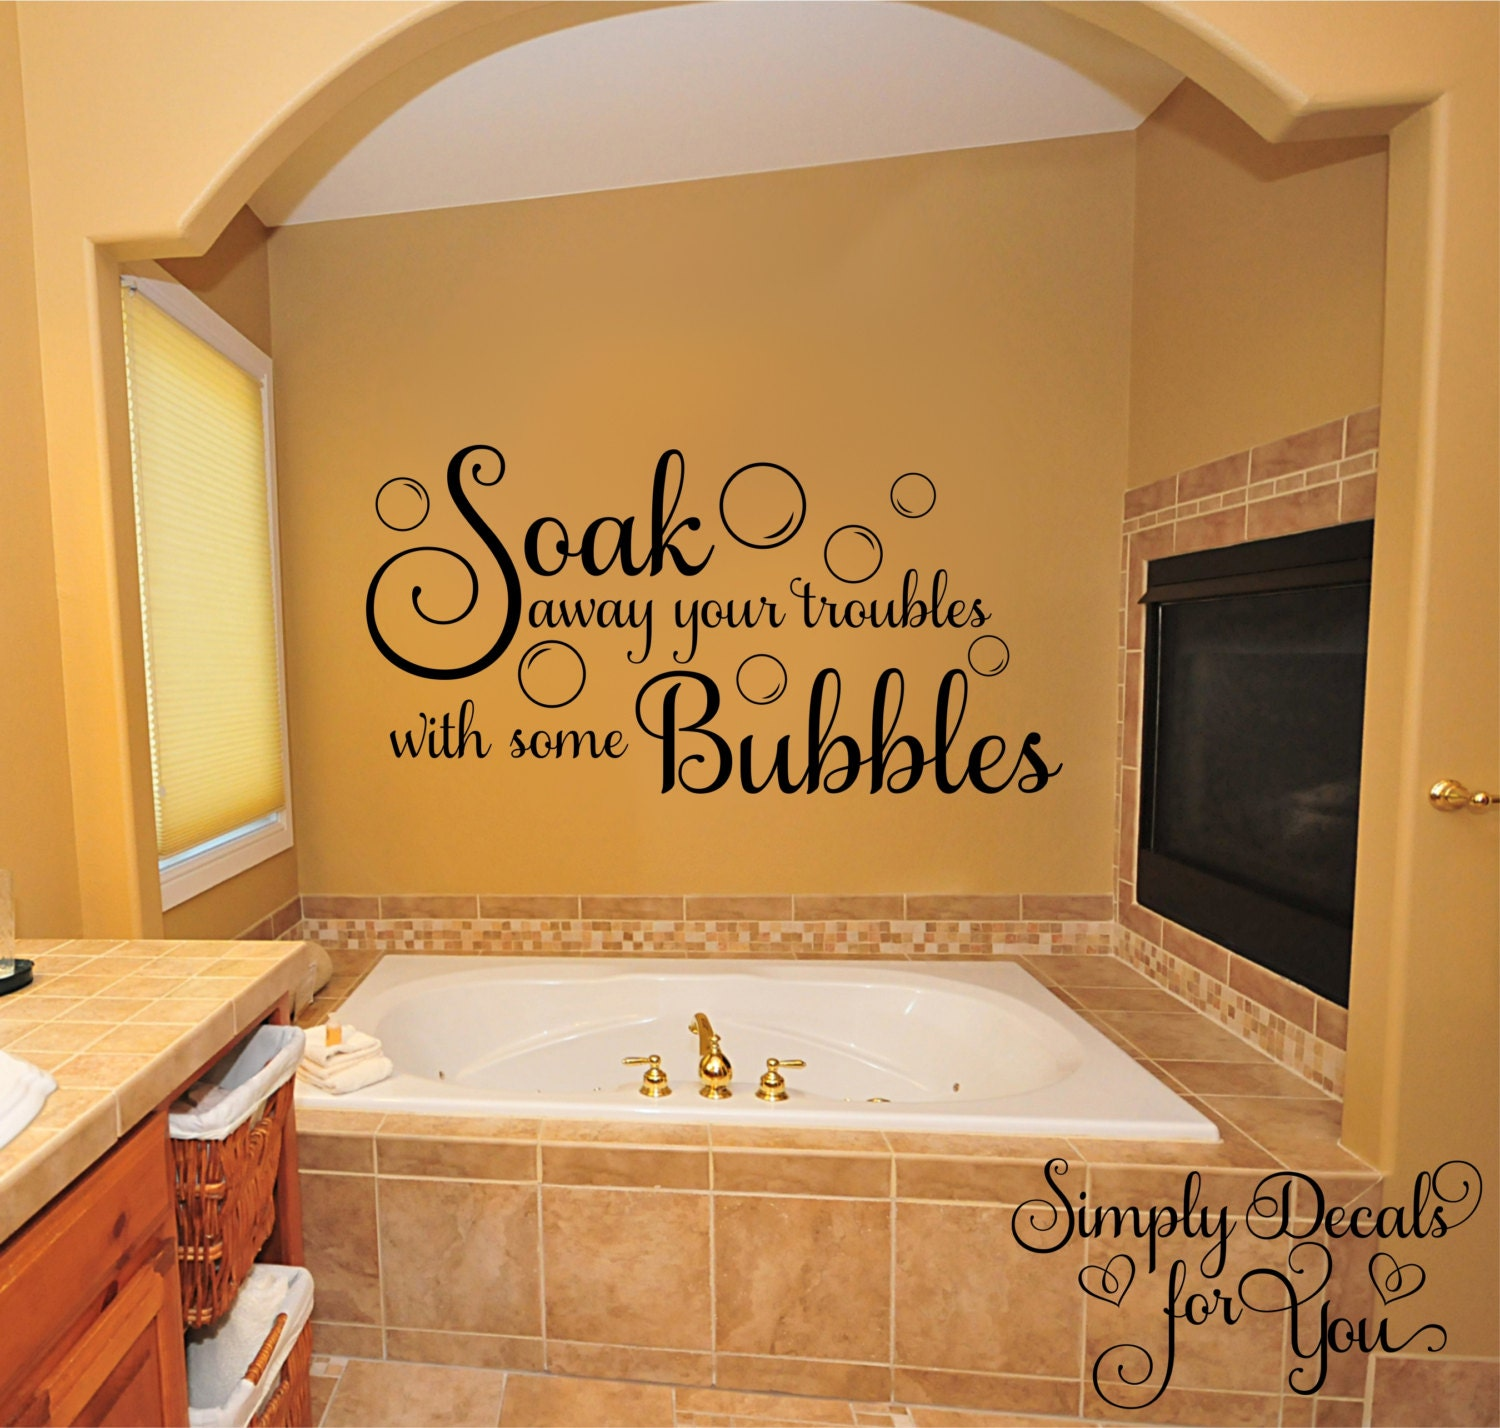 Bubble Bath Wall Decal Bathroom Decal Bathroom Sticker Wall